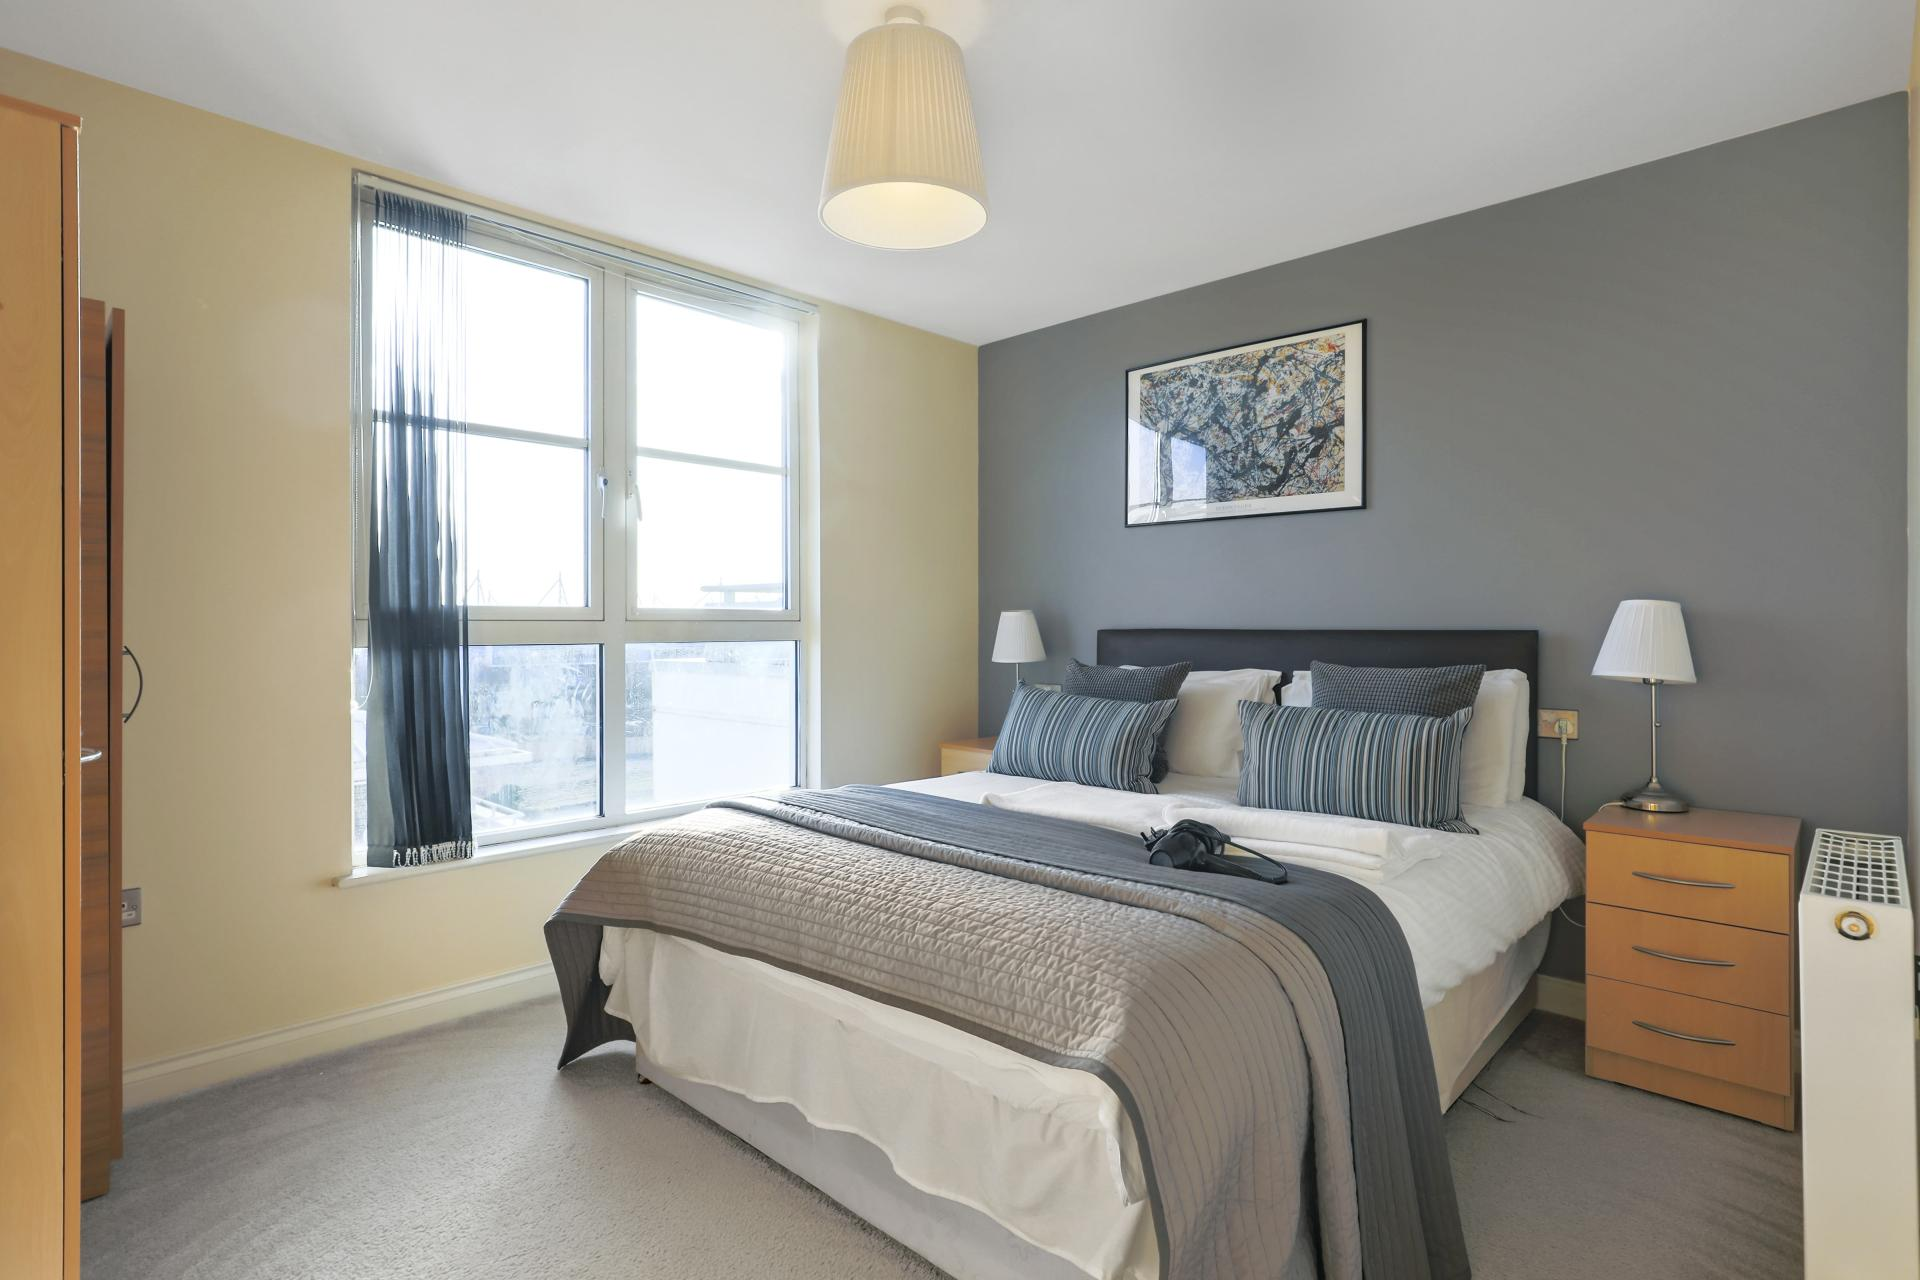 Bed at Freemens Meadow Apartments, Freemens Meadow, Leicester - Citybase Apartments